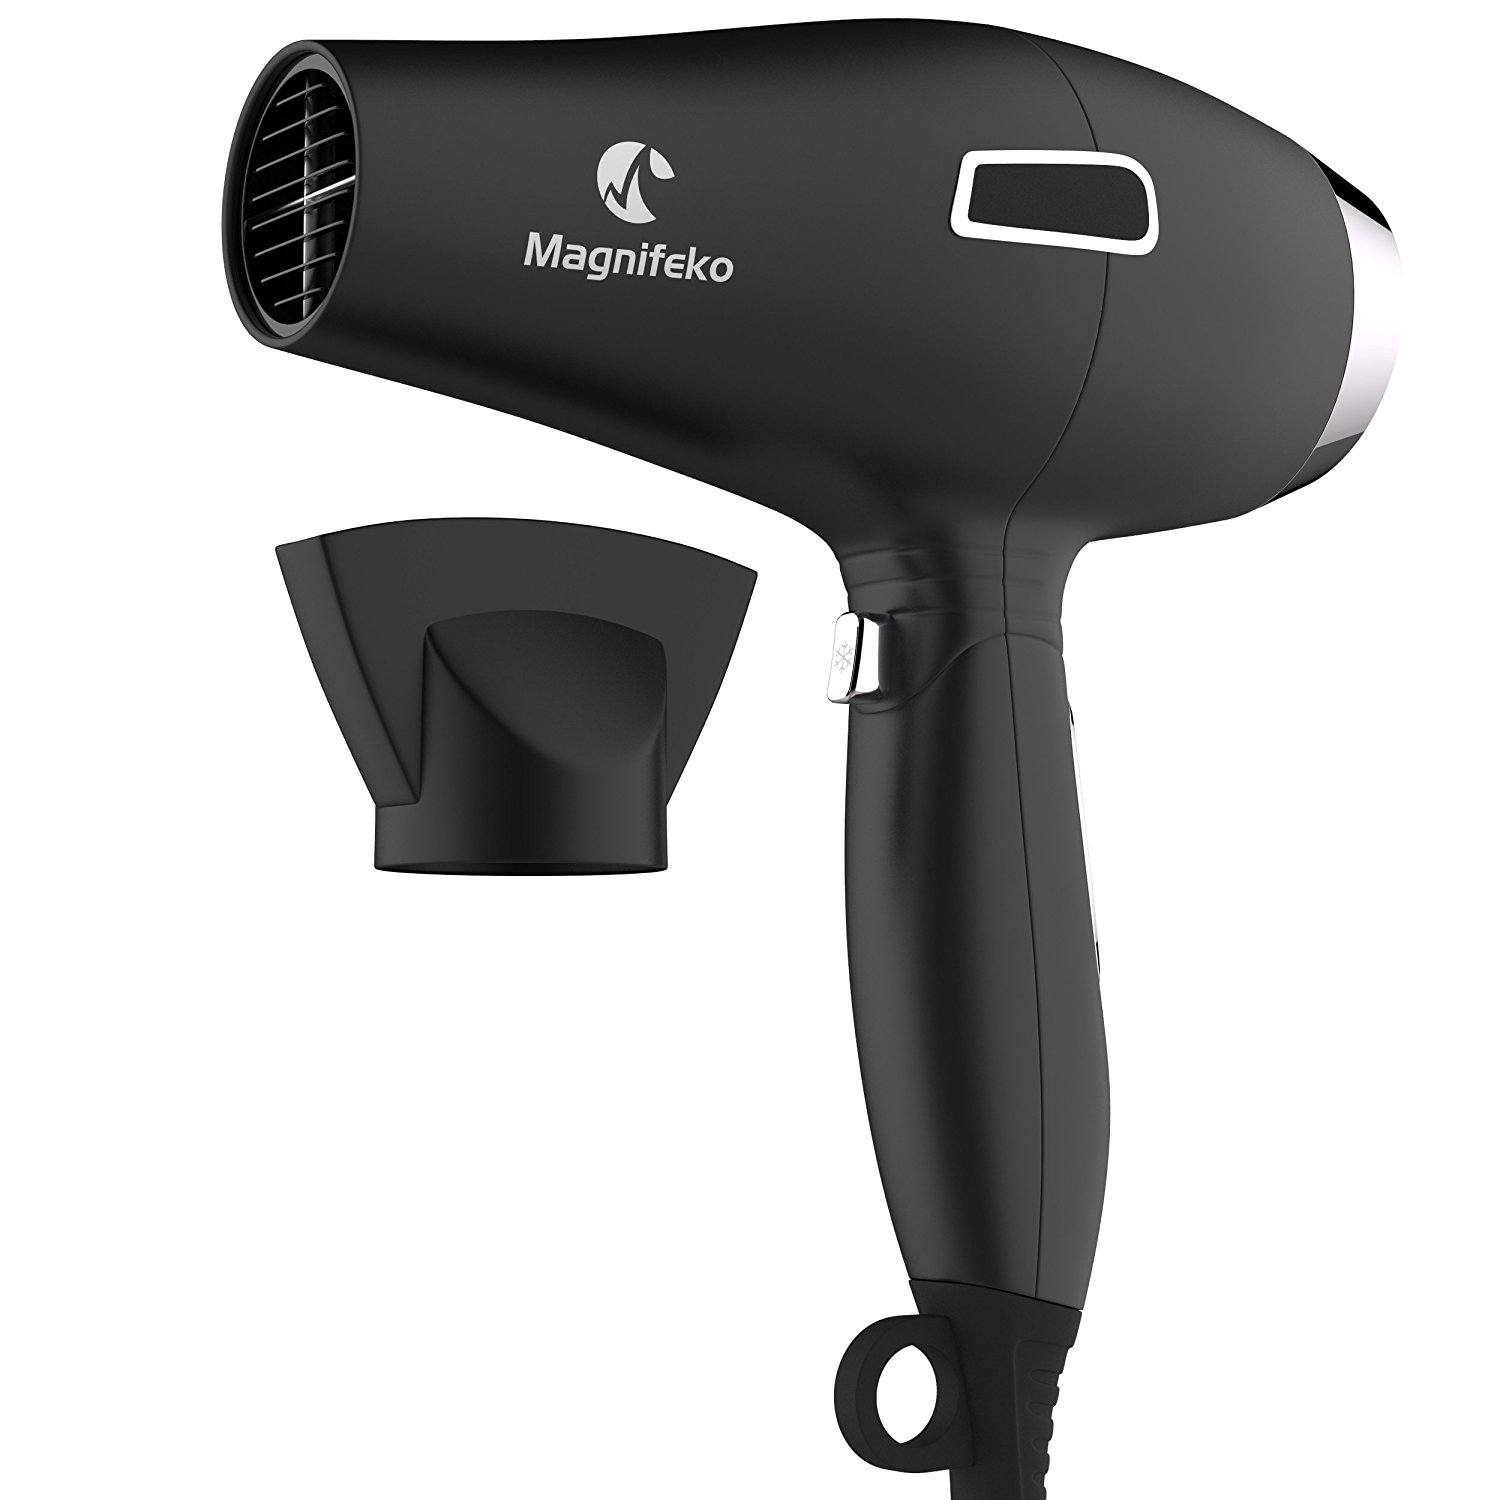 Ionic Hair Dryer | Anti-Frizz Blow dryer with Extra-Fast 1875W Motor and Concentrator Nozzle | Professional Hairdryer for Men and Women